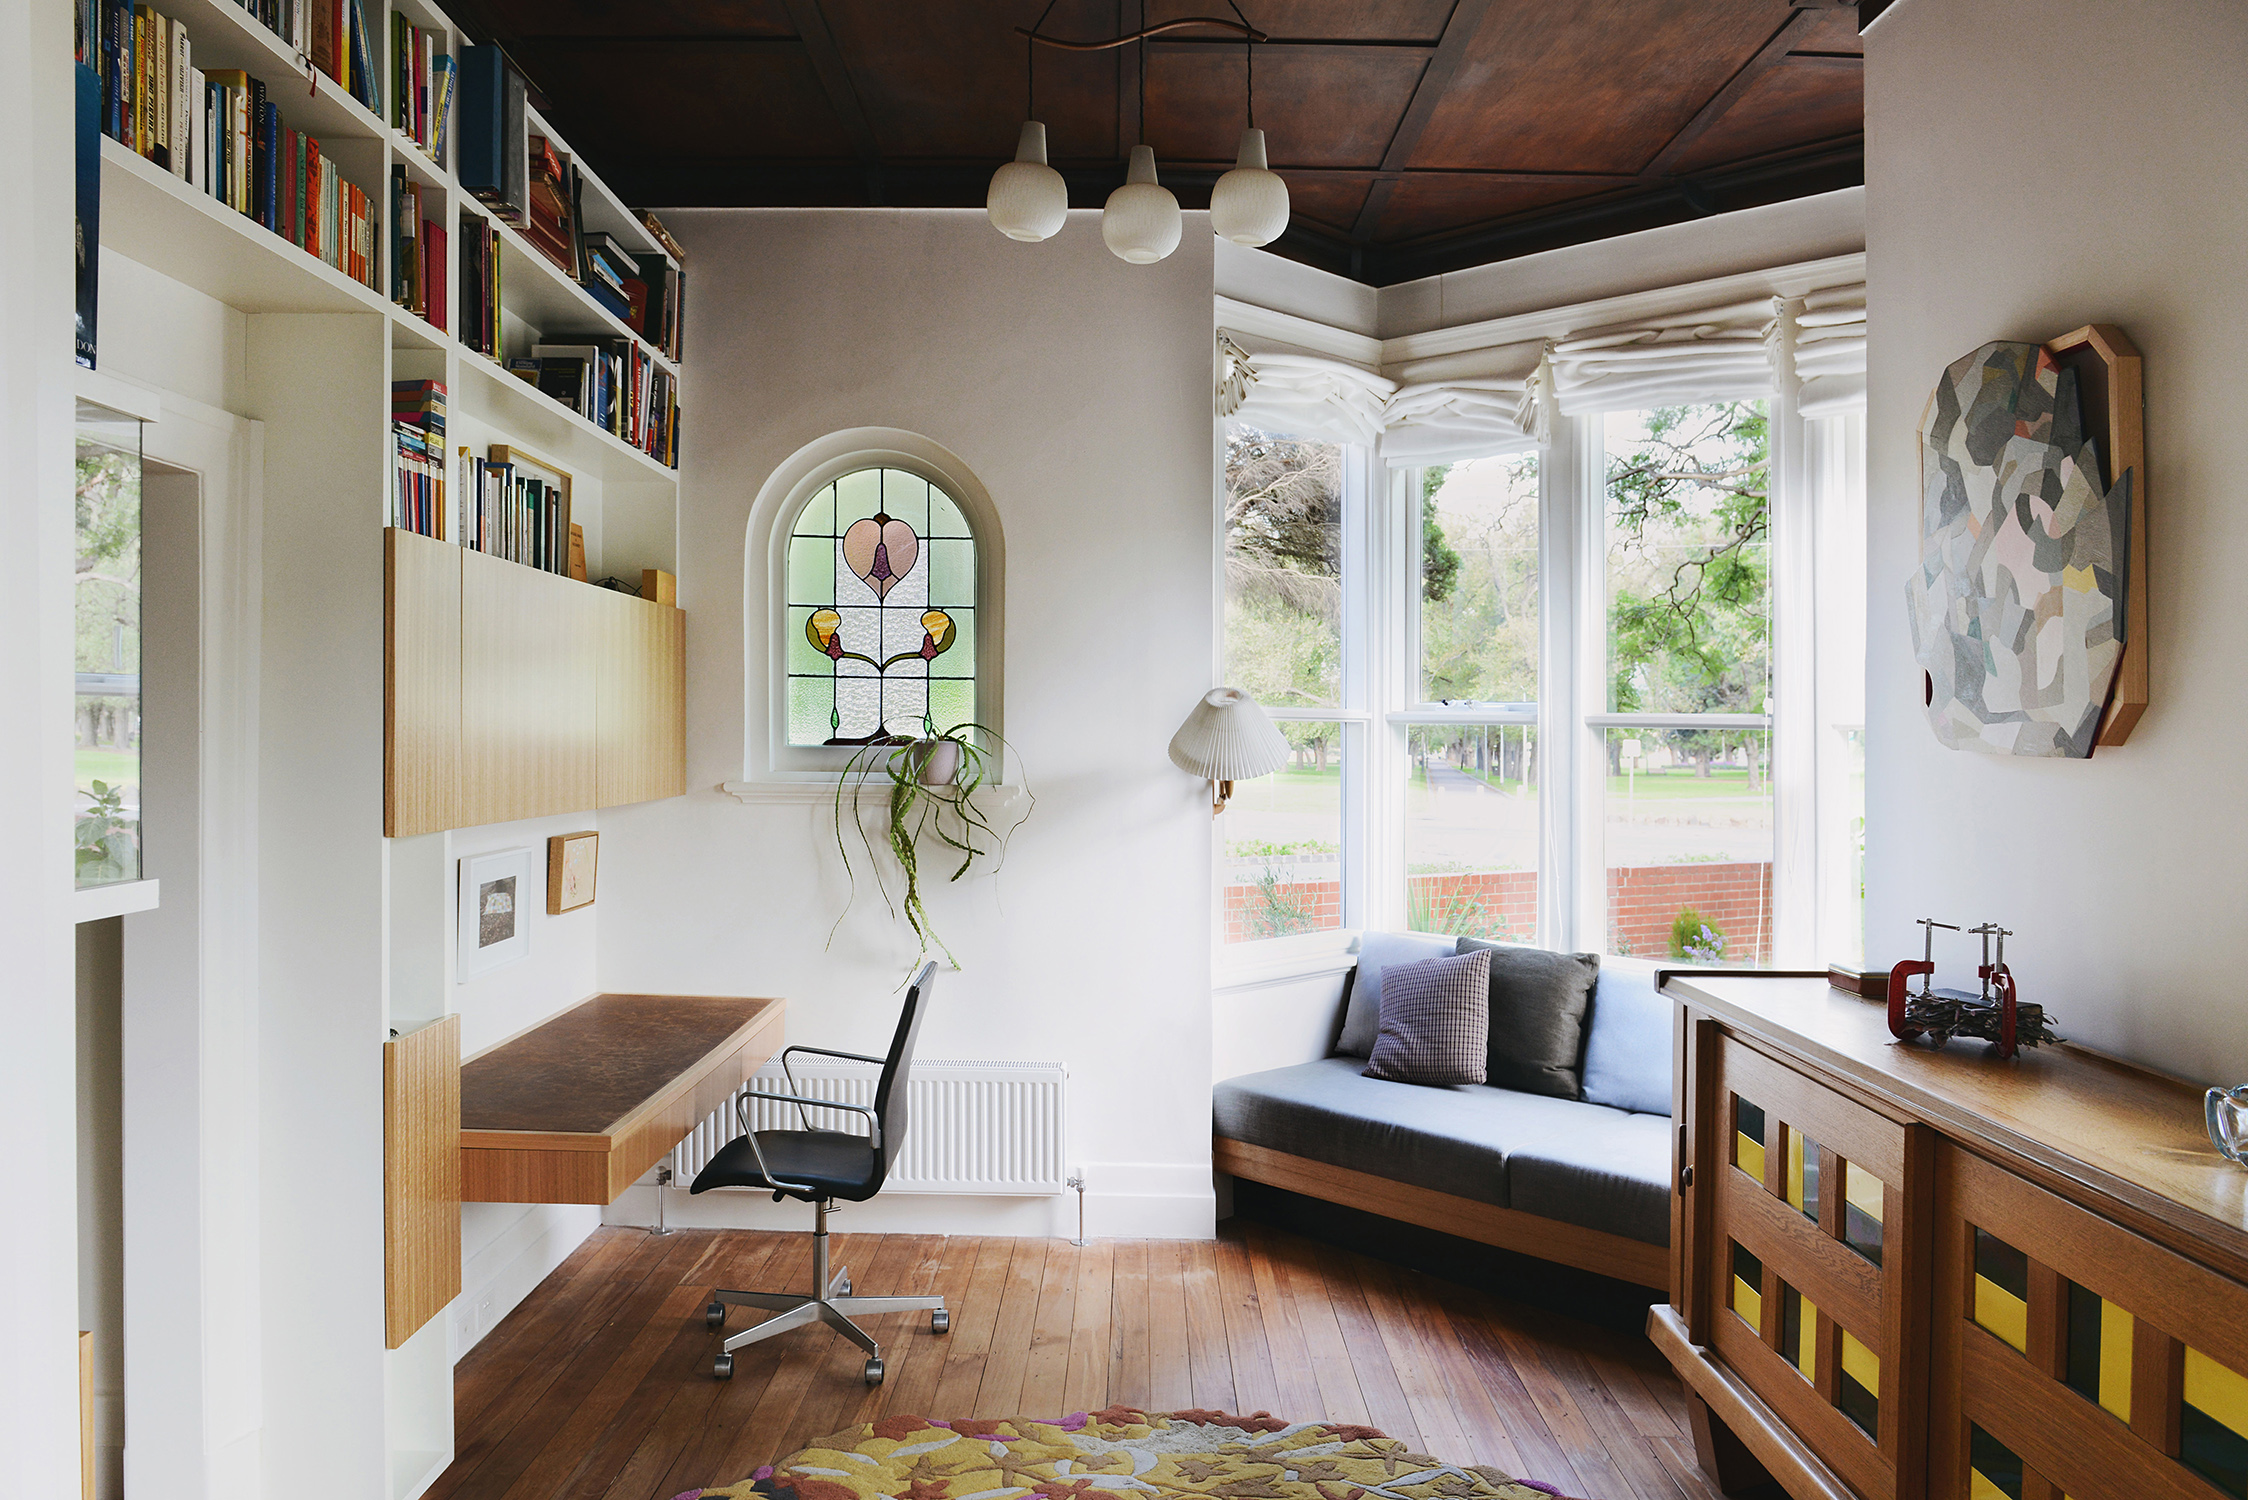 Gallery Of Park Life By Nest Architects Local Design And Interiors Fitzroy North, Vic Image 18